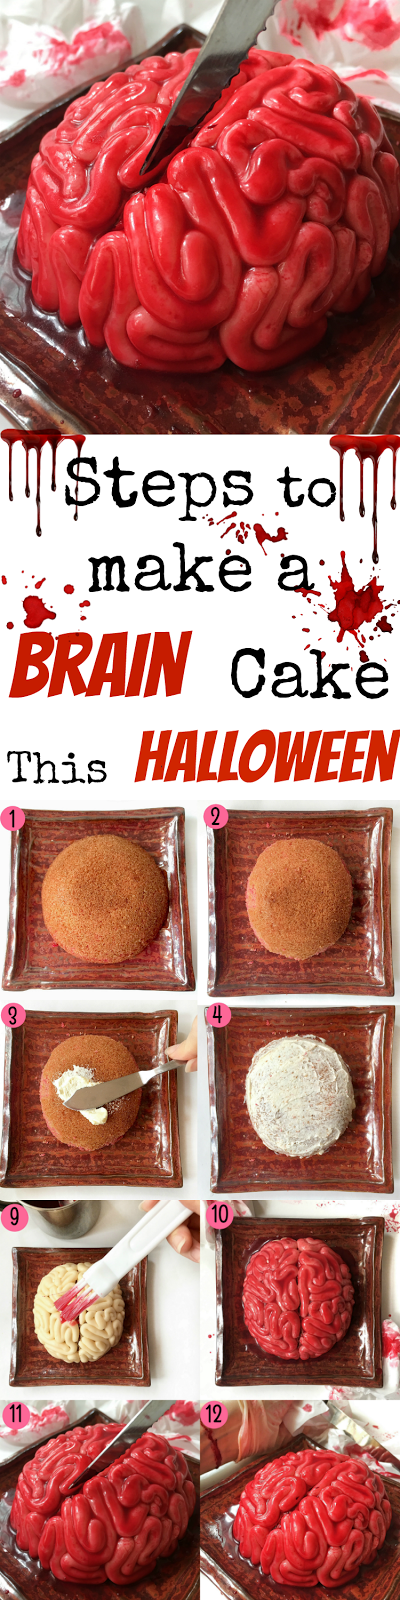 Halloween Brain cake pictures for Pininterest